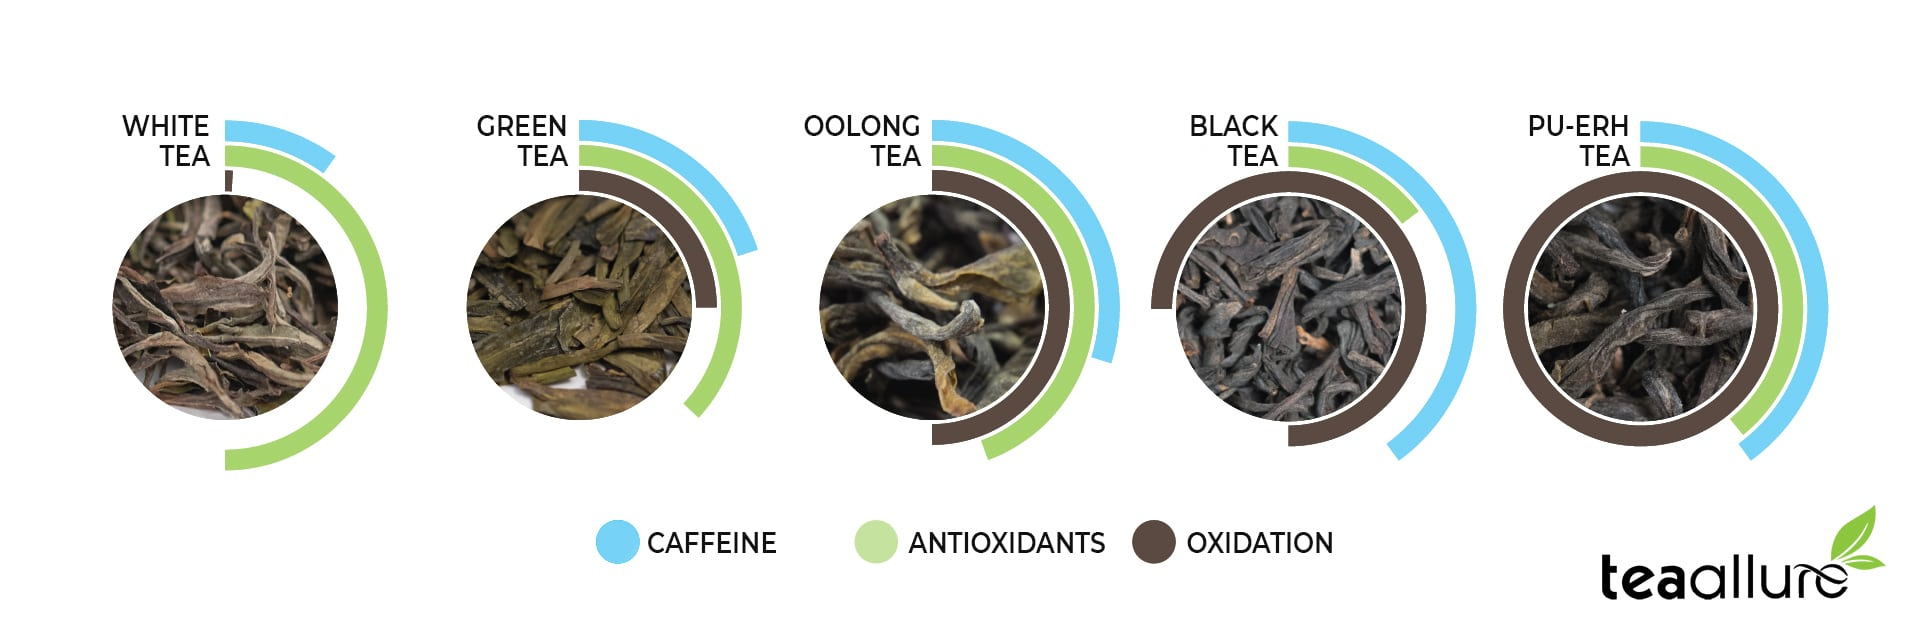 Caffeine in Black tea vs. other tea types